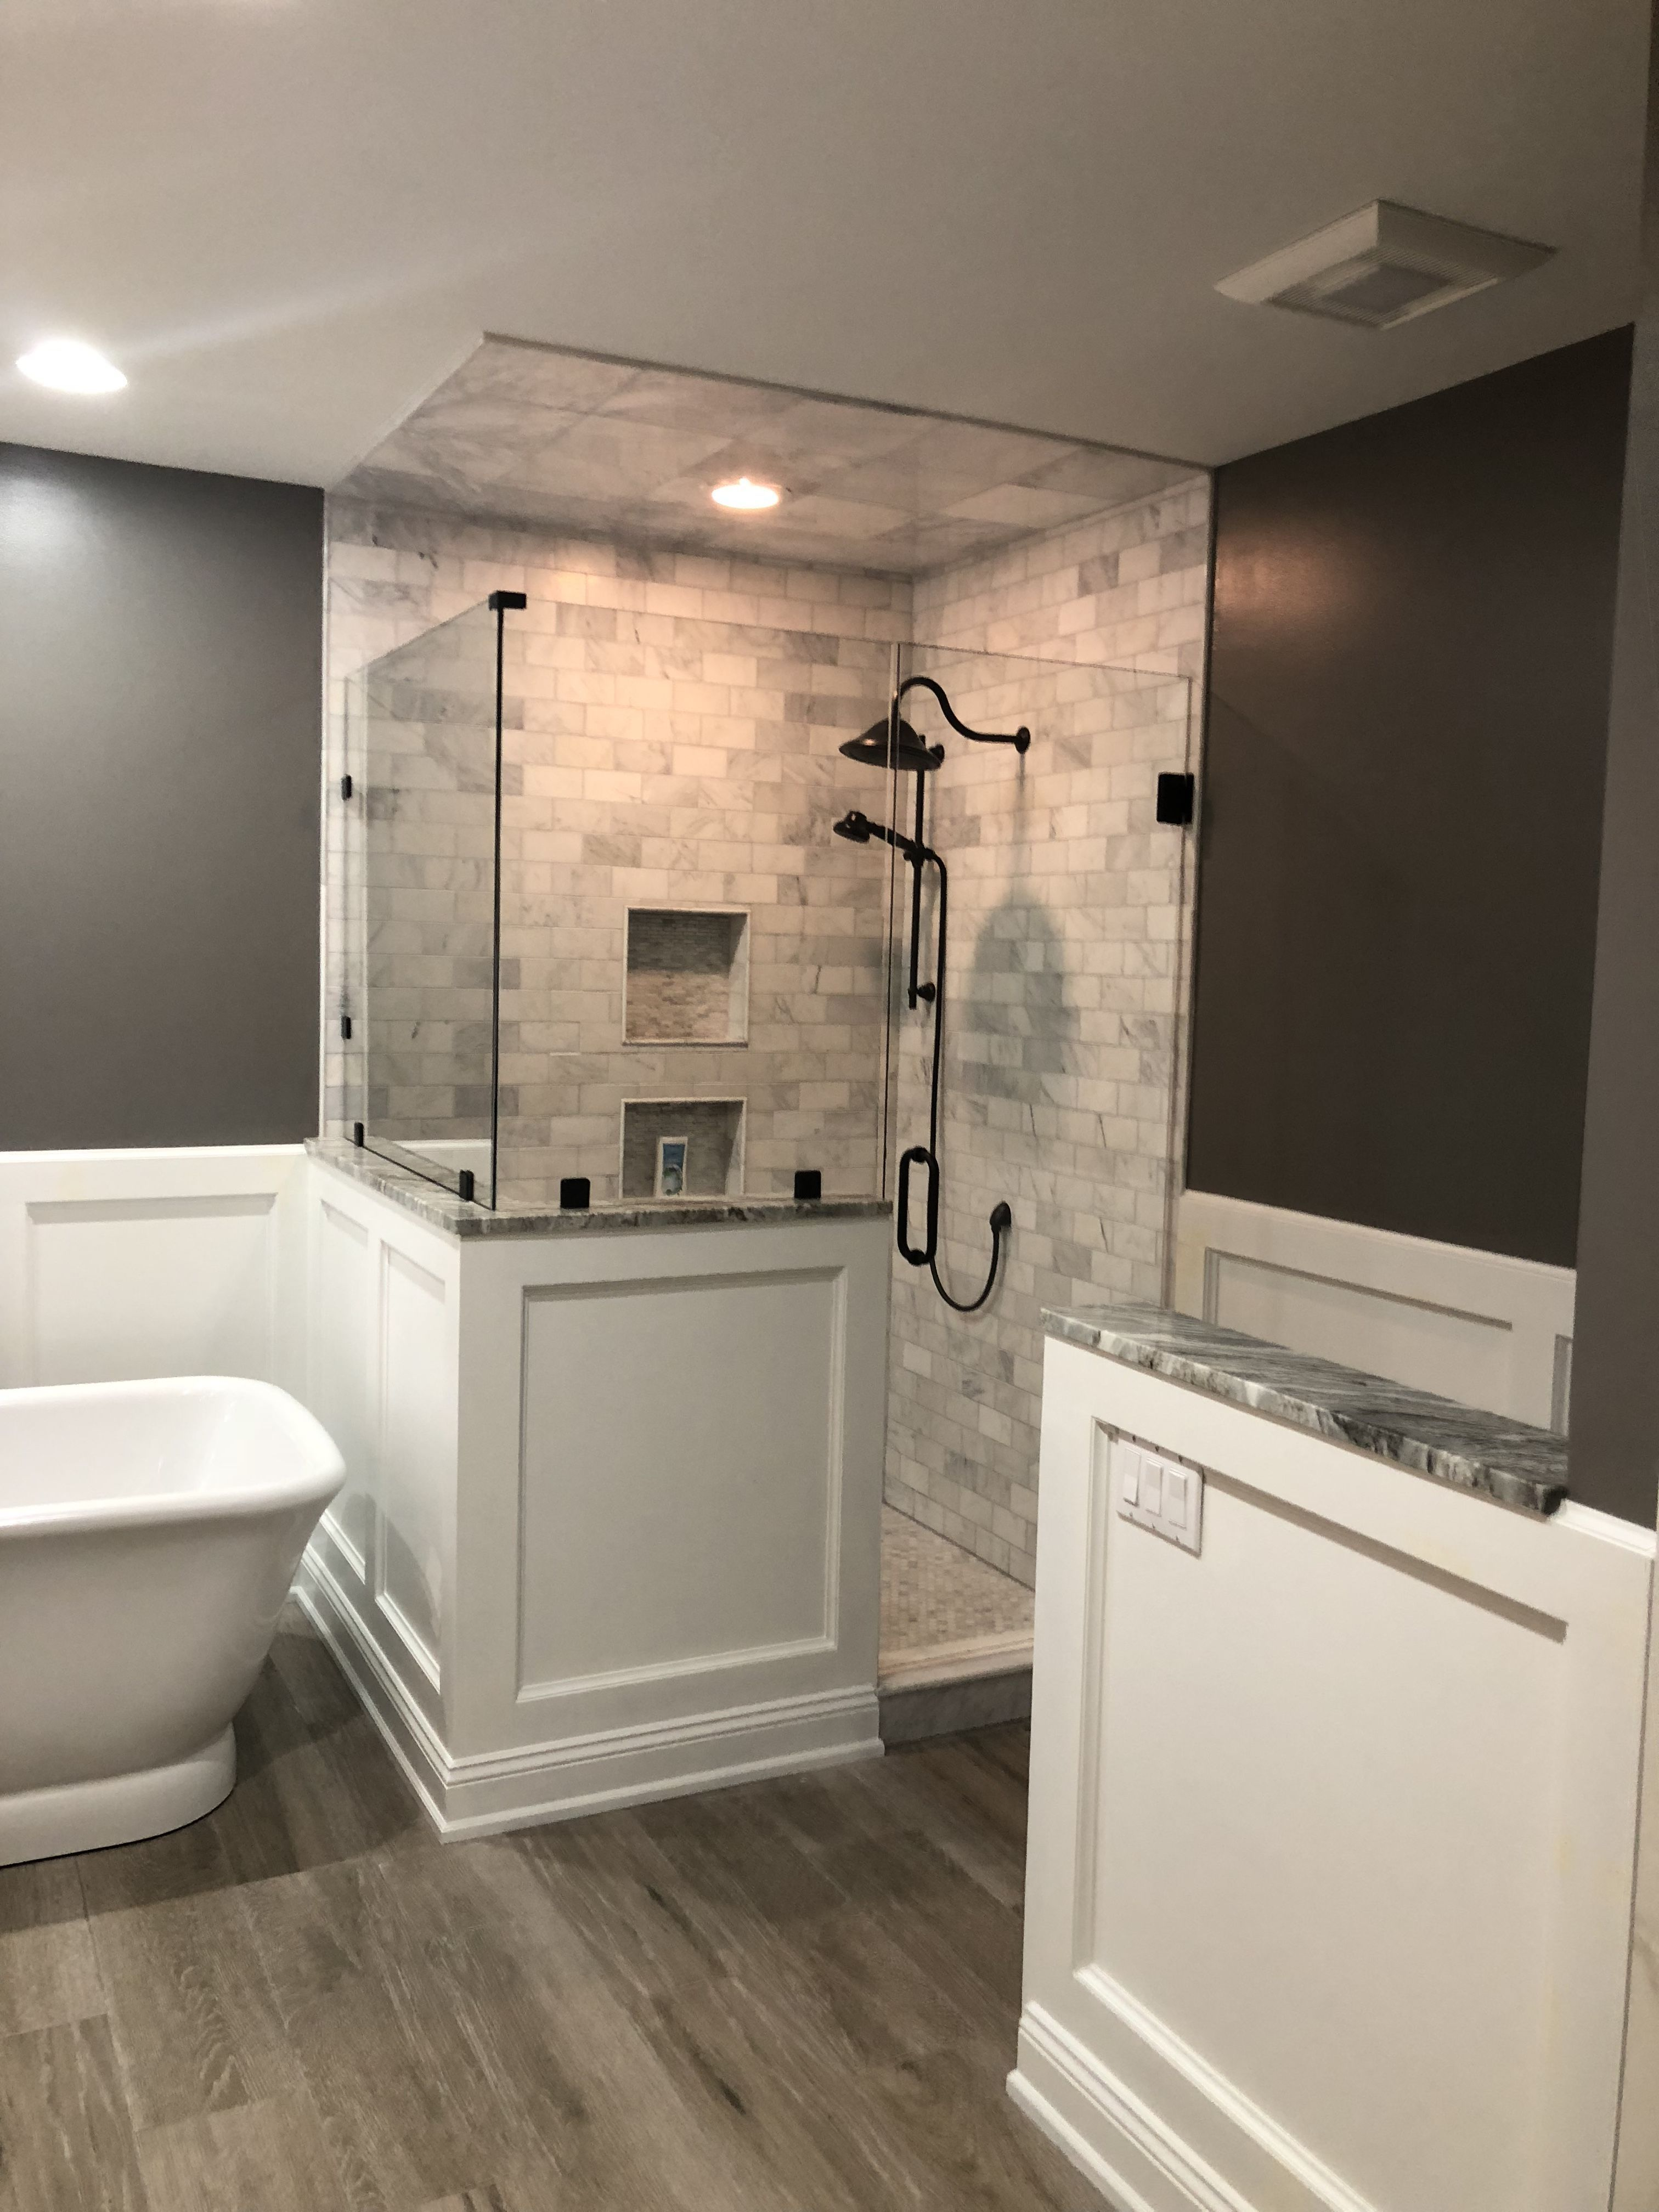 These Amazing Shower Ideas Will Motivate You To Make Changes That Will Add Value And Al Bathroom Remodel Master Farmhouse Master Bathroom Bathroom Tile Designs